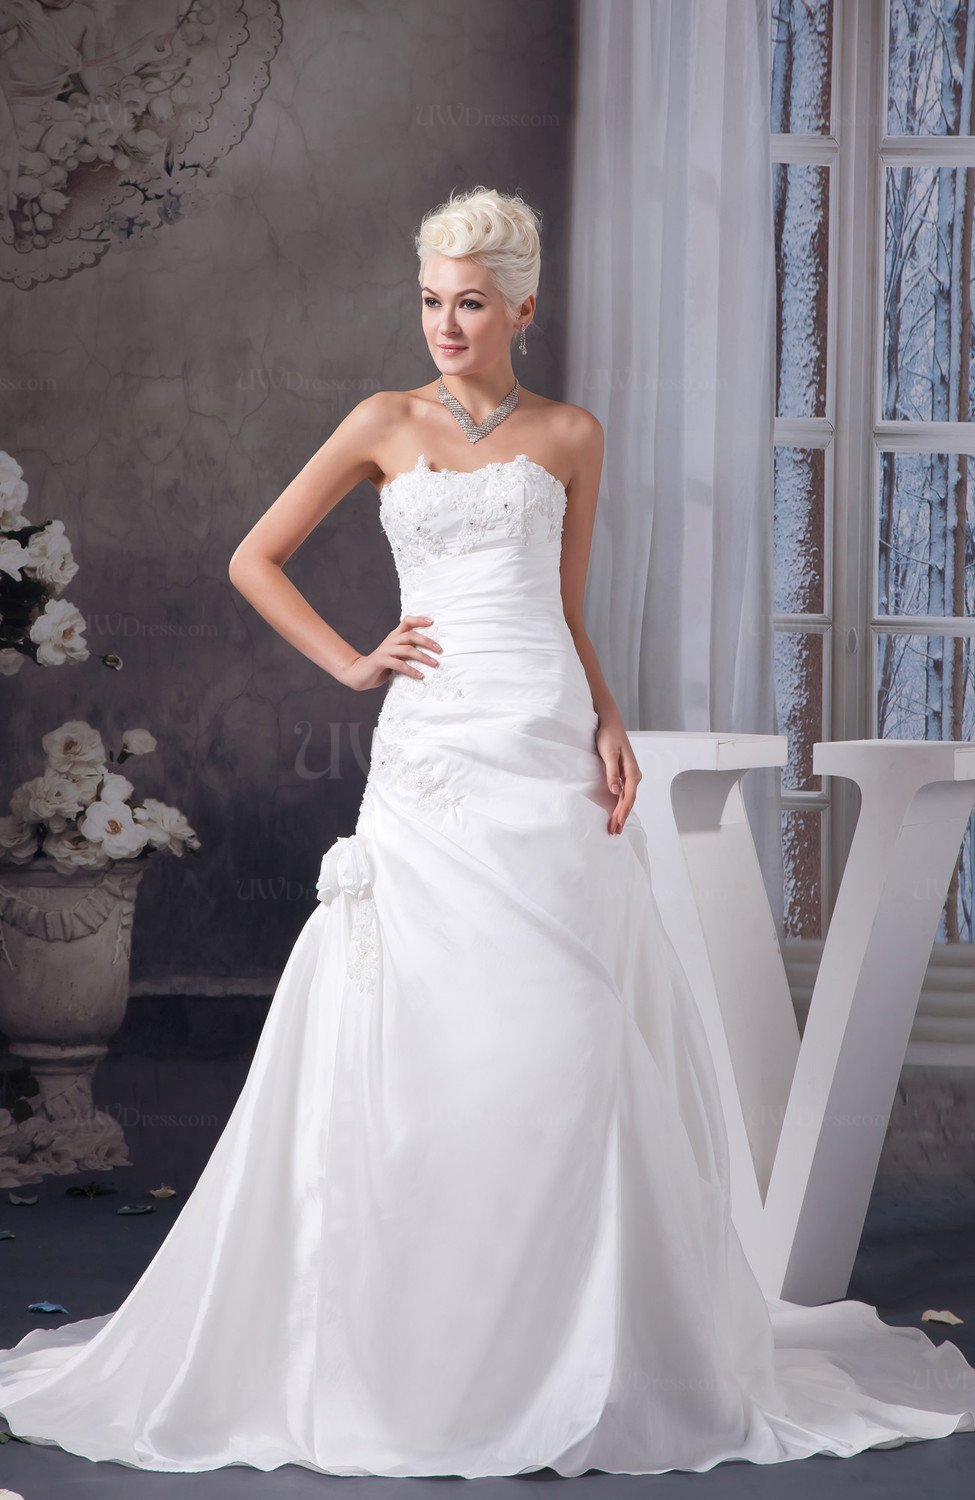 White Allure Bridal Gowns Inexpensive Backless Elegant ...